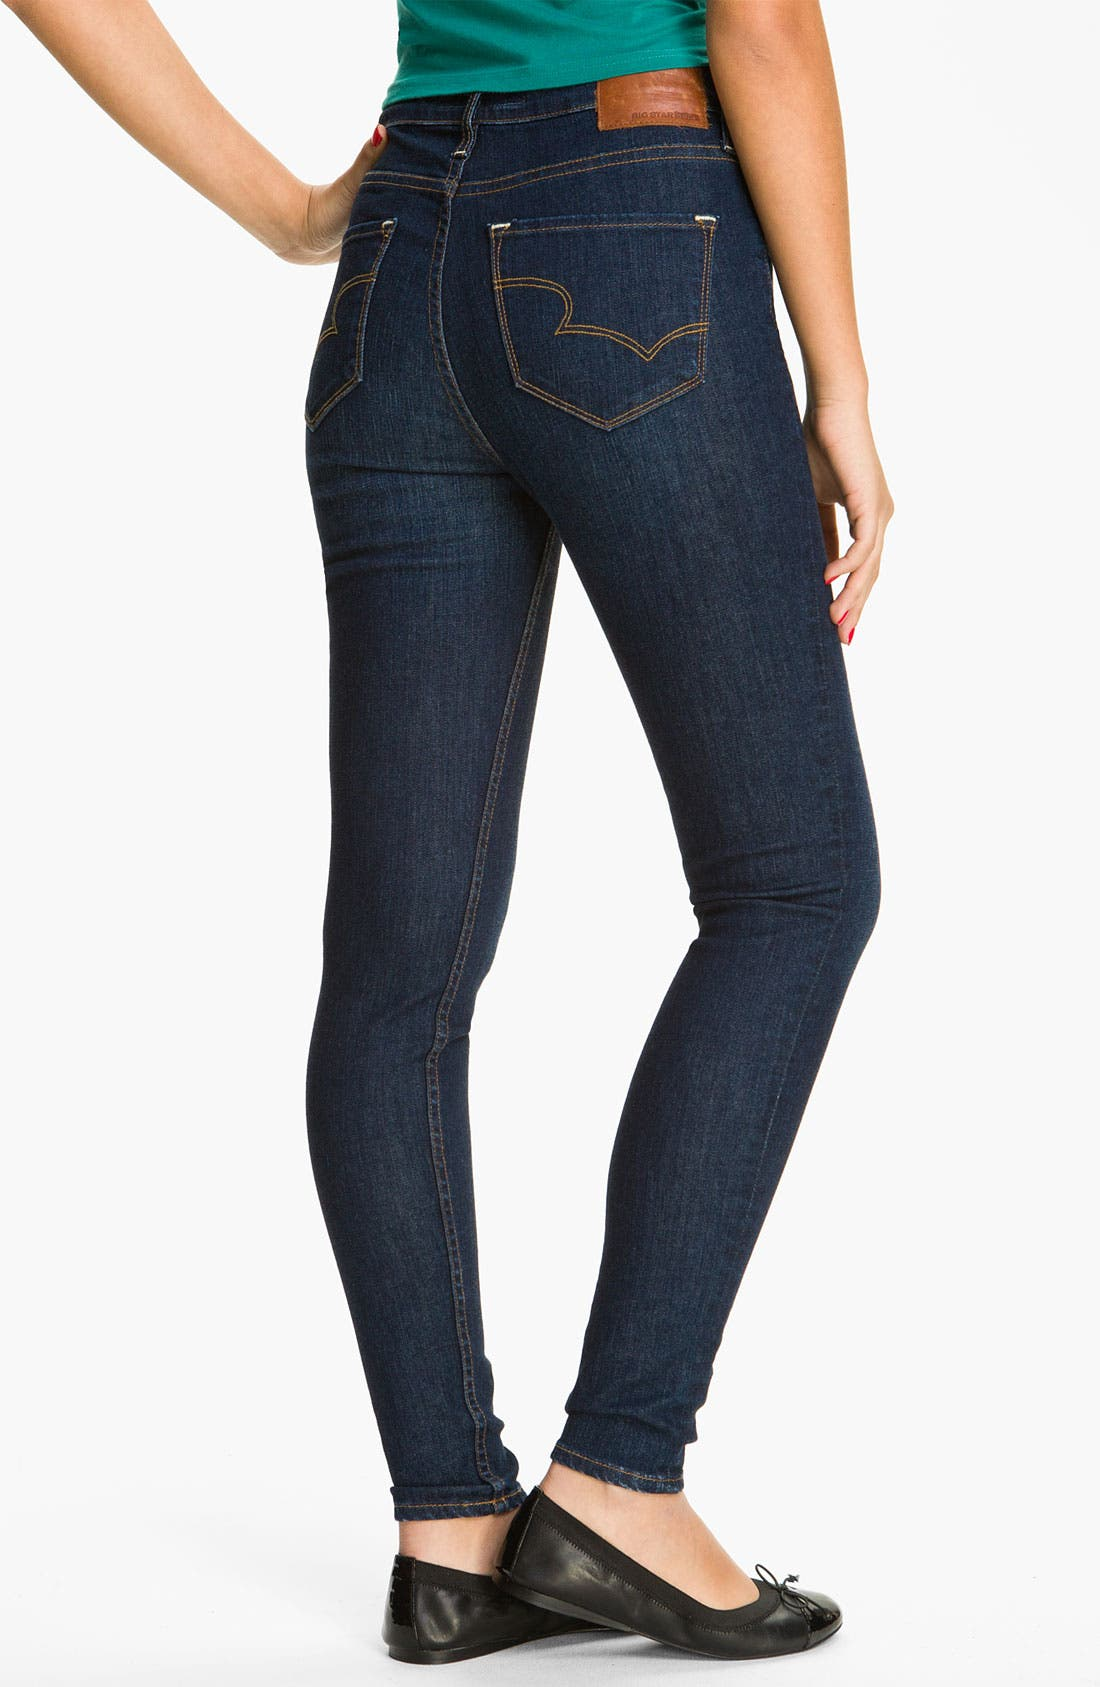 Alternate Image 1 Selected - Big Star 'Avalon' Skinny Jeans (Flux) (Juniors)